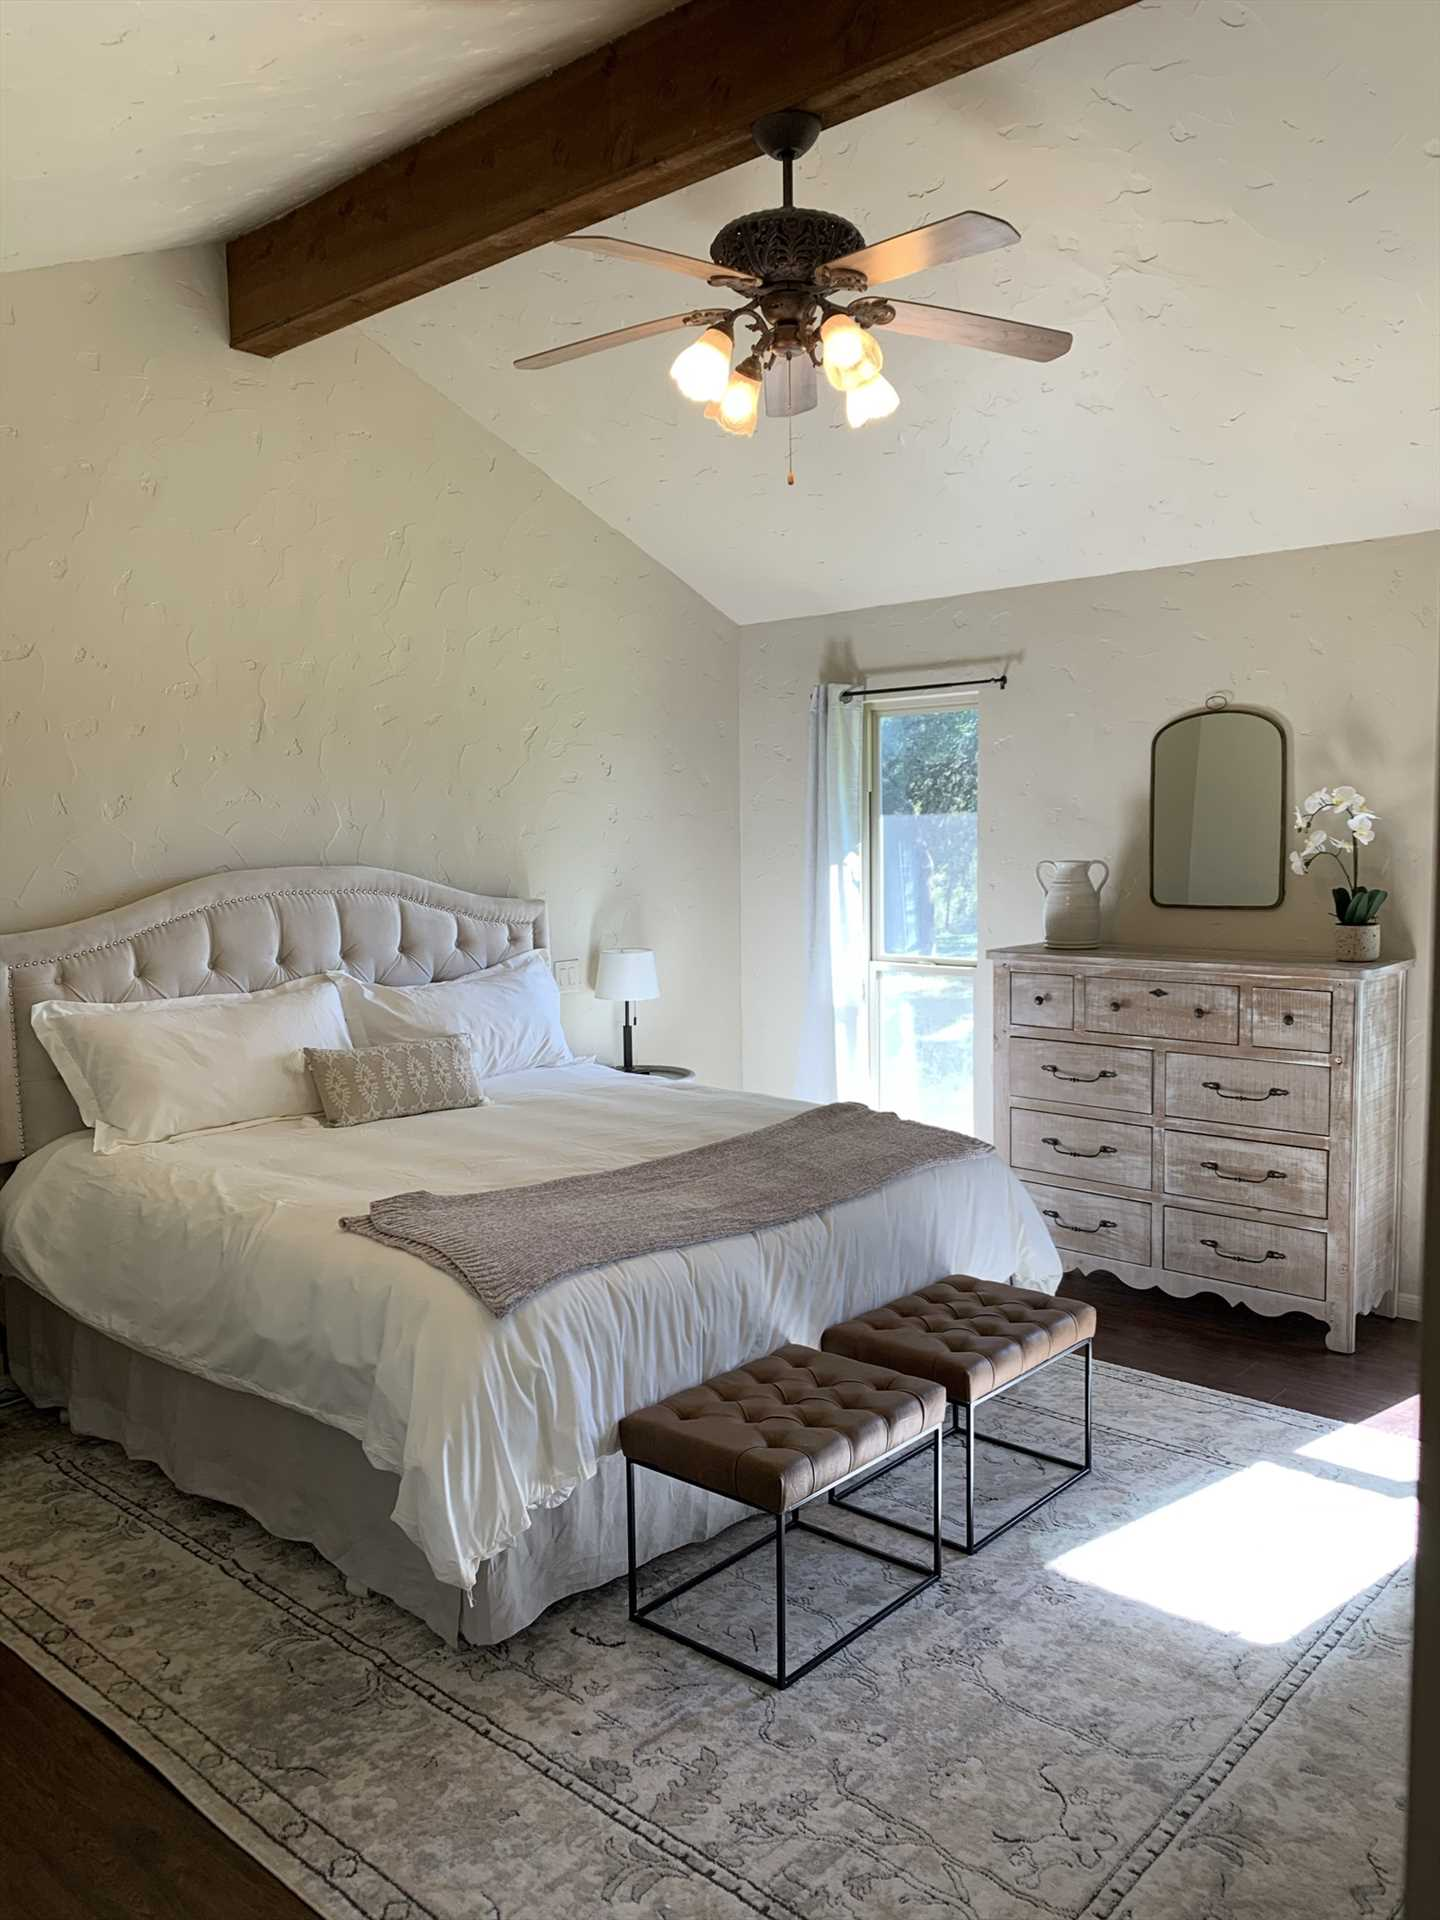 A high beamed ceiling and enormous king-sized bed provide royal accommodations for two in the master bedroom.